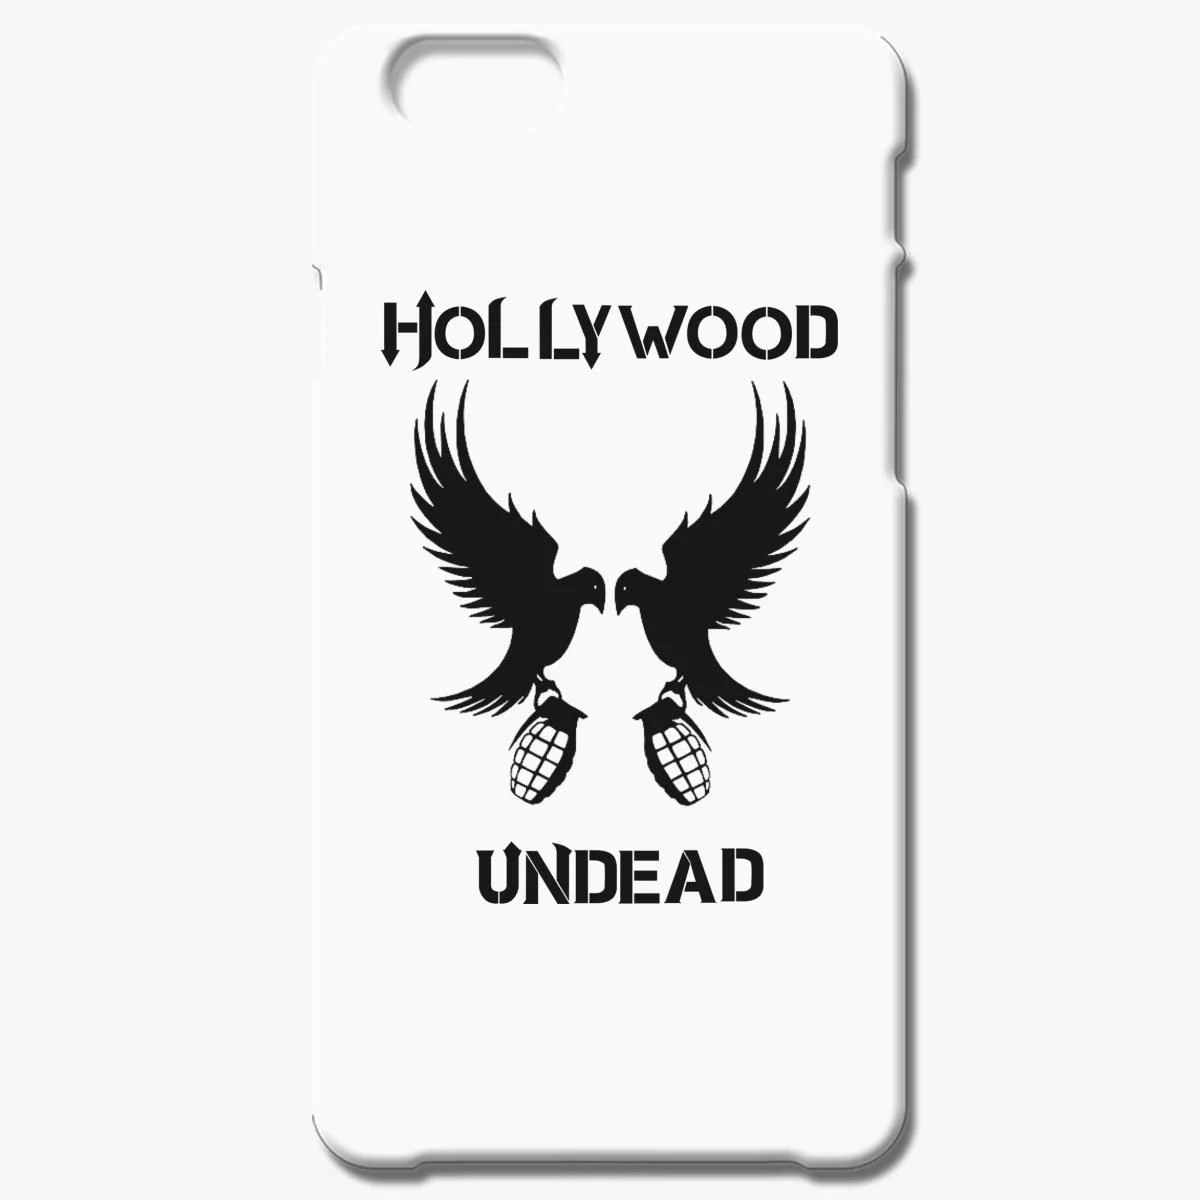 Hollywood Undead Iphone 6 6s Case